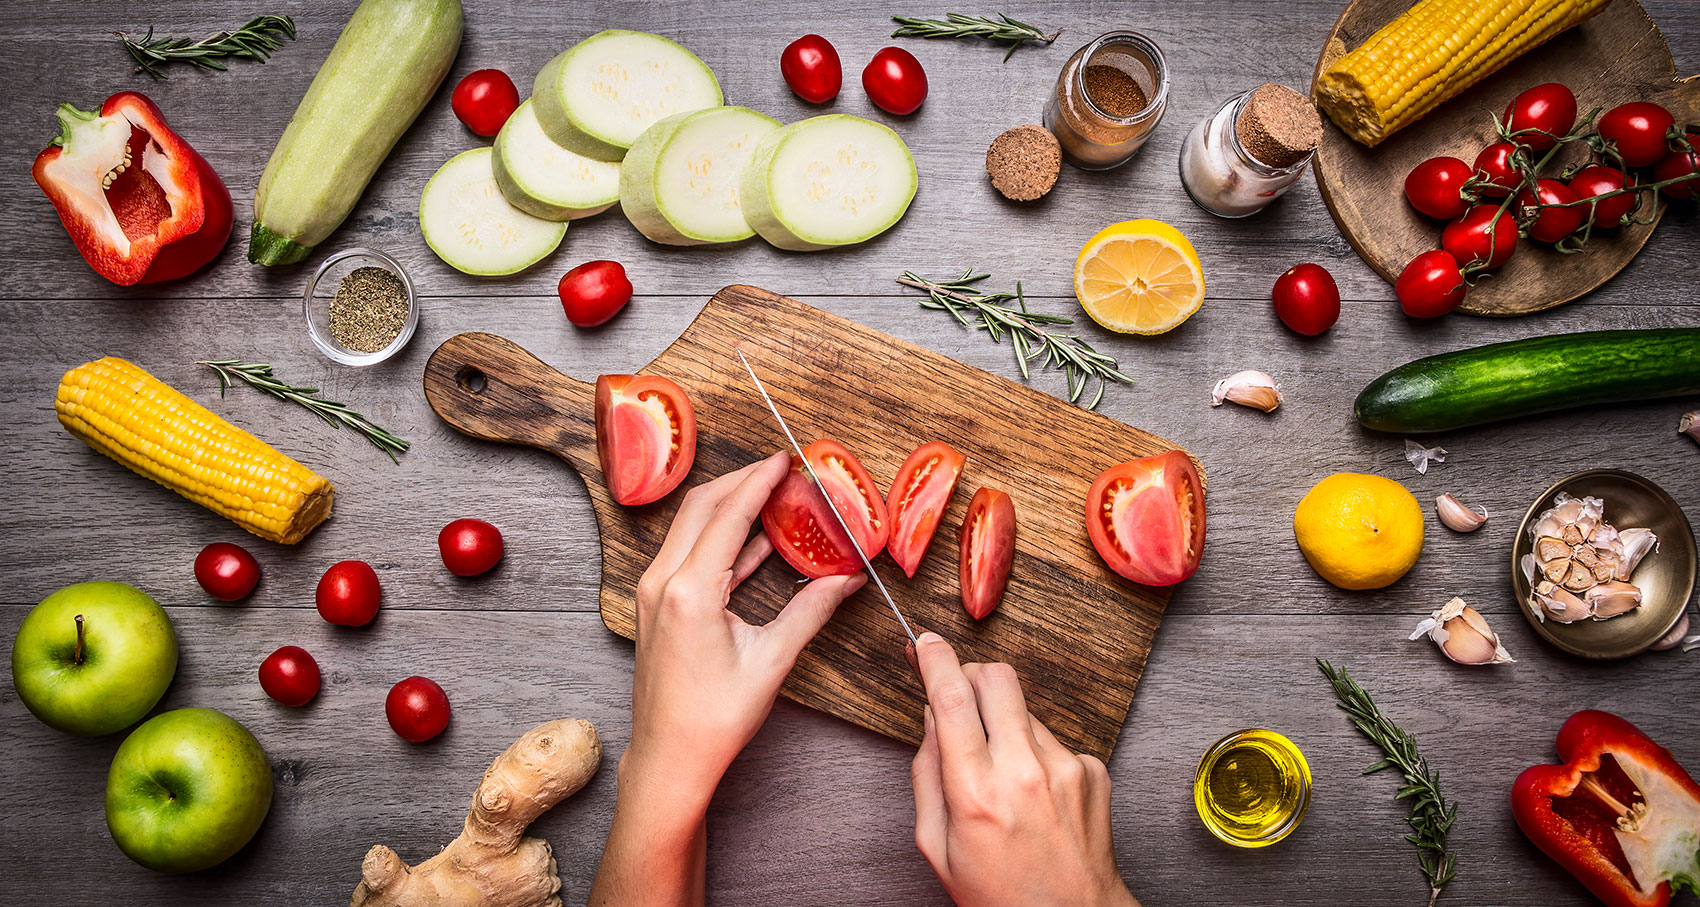 Cooking is fun! We test cooking boxes for you. (Photo: iStock/Sergeyshibut)